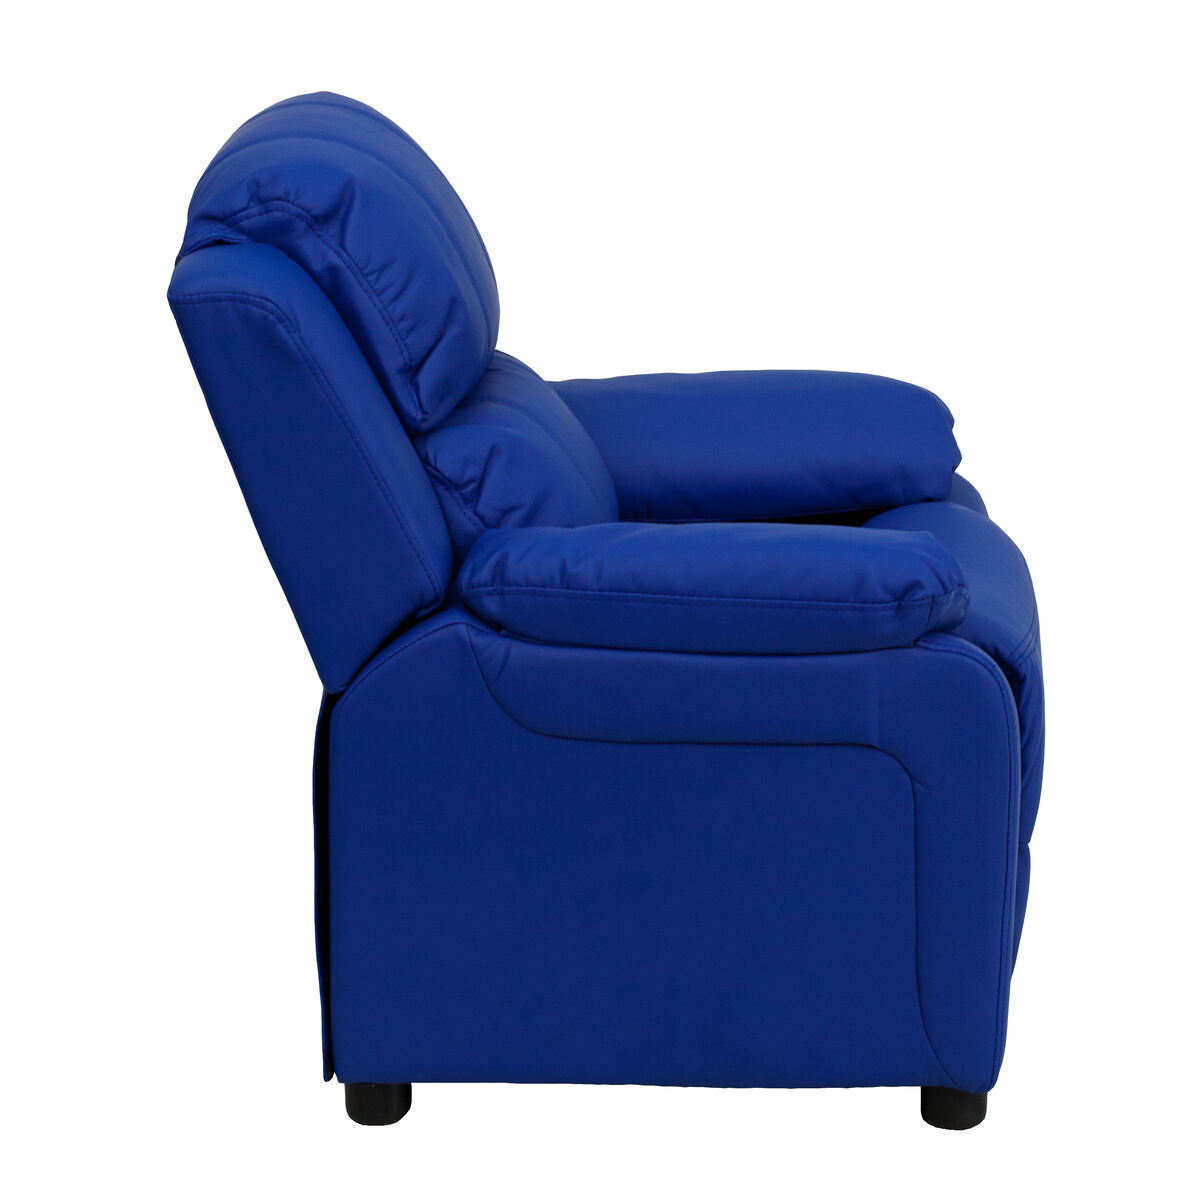 Deluxe Padded Contemporary Blue Vinyl Kids Recliner With